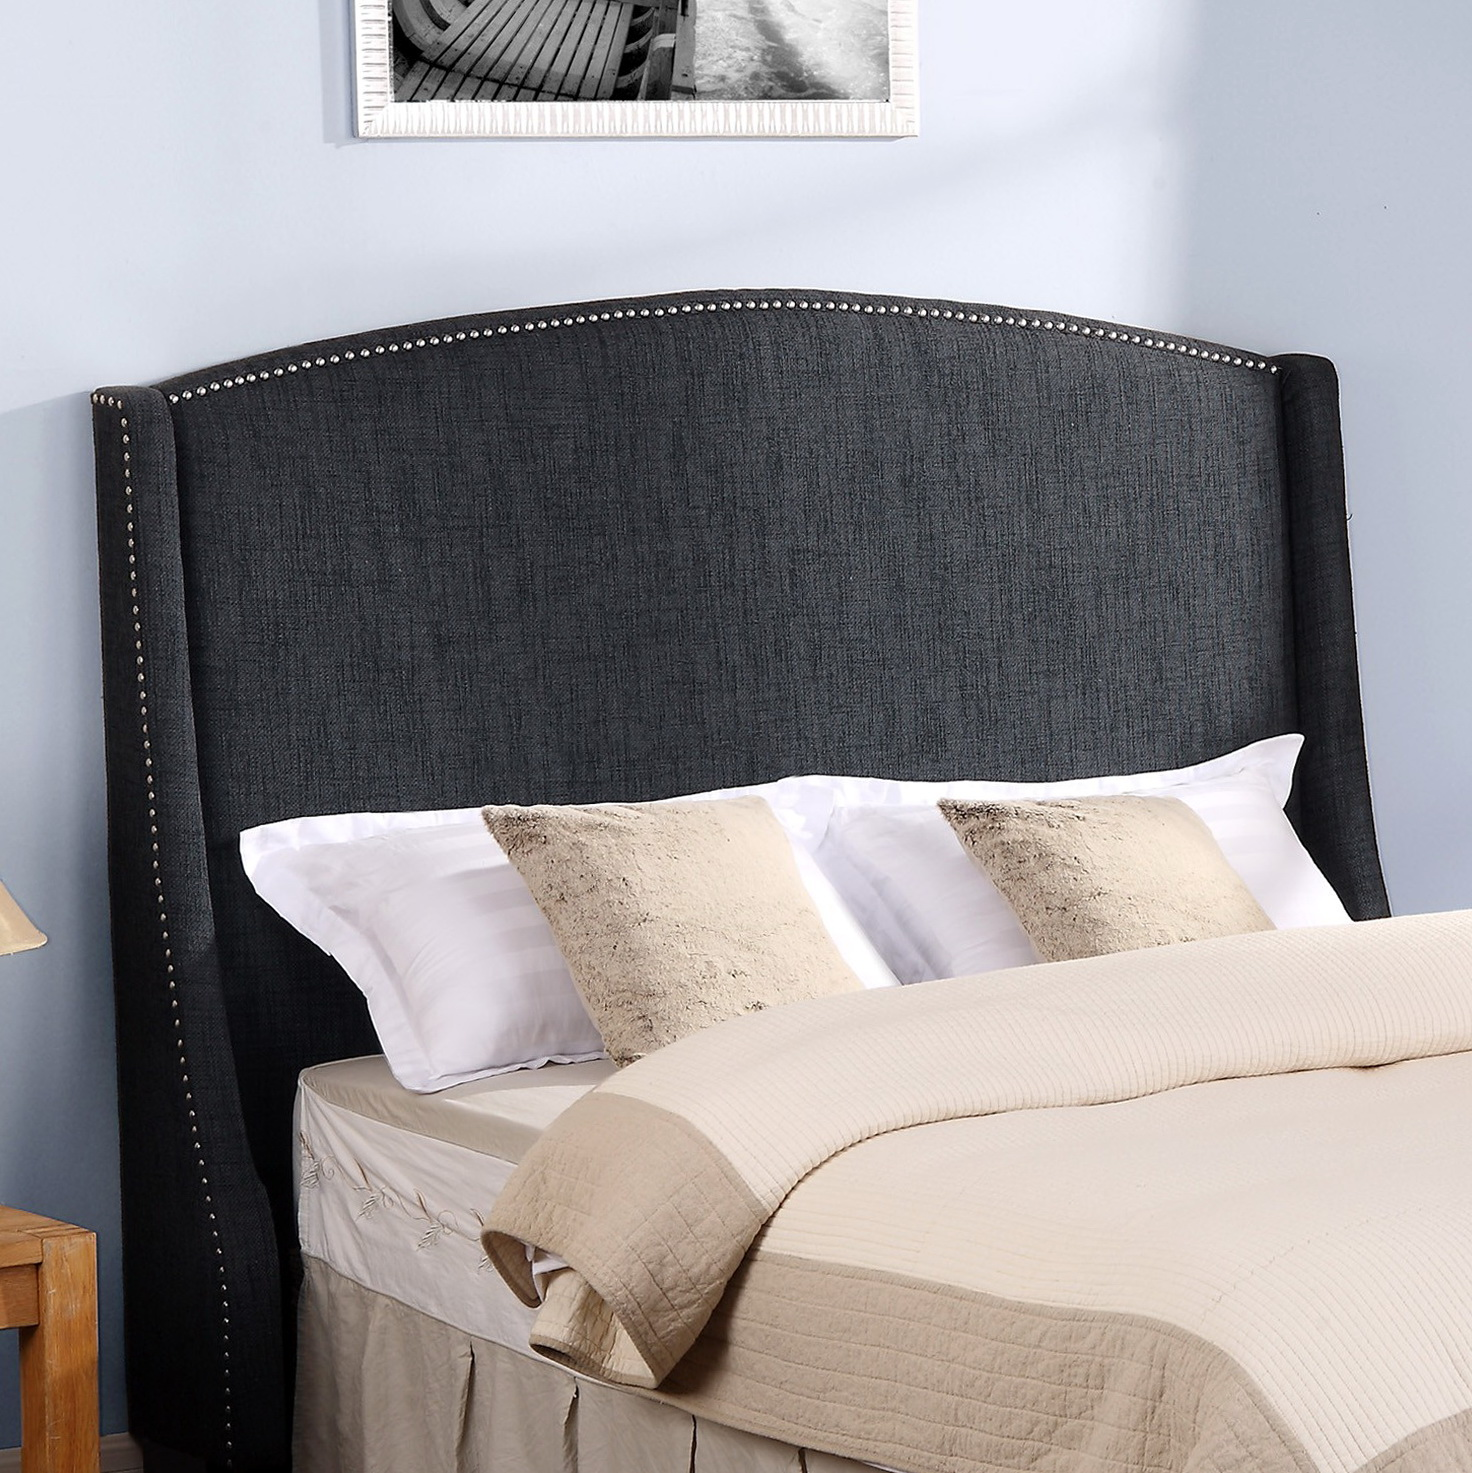 Queen Bed Headboard Diy